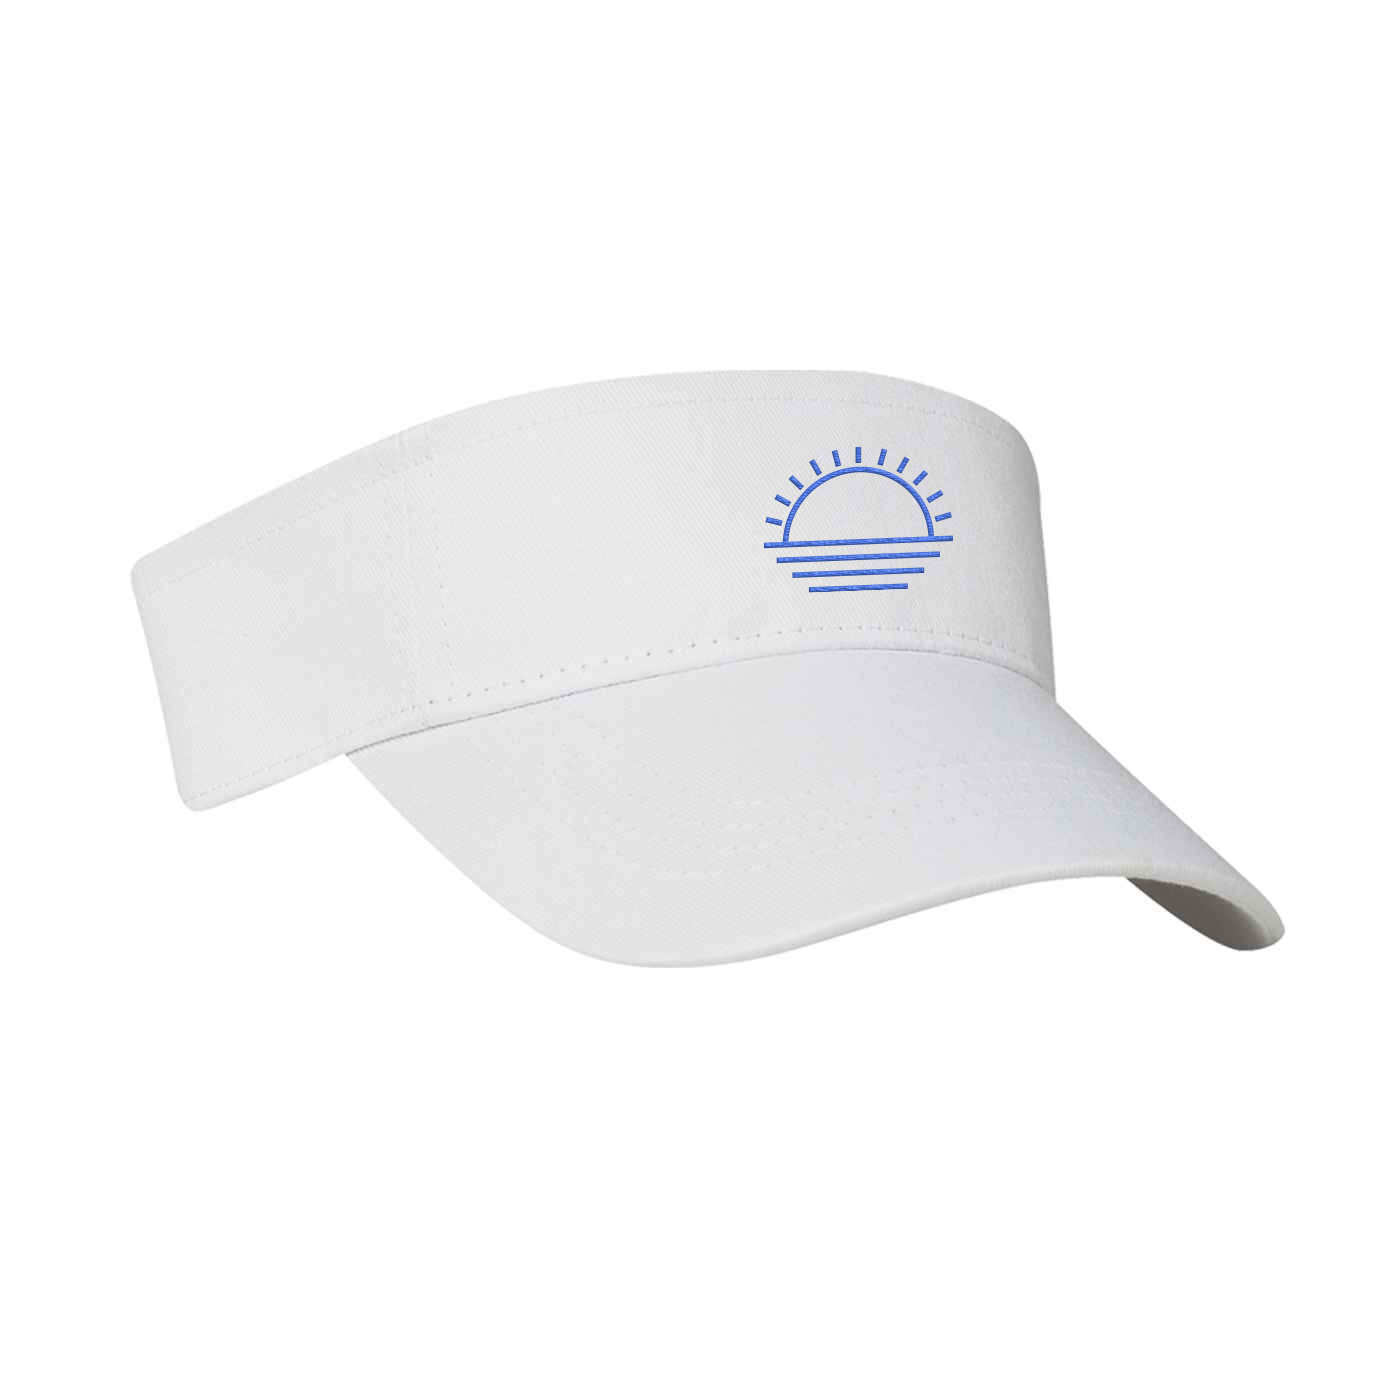 317709 classic visor one location embroidery up to 7k stitches